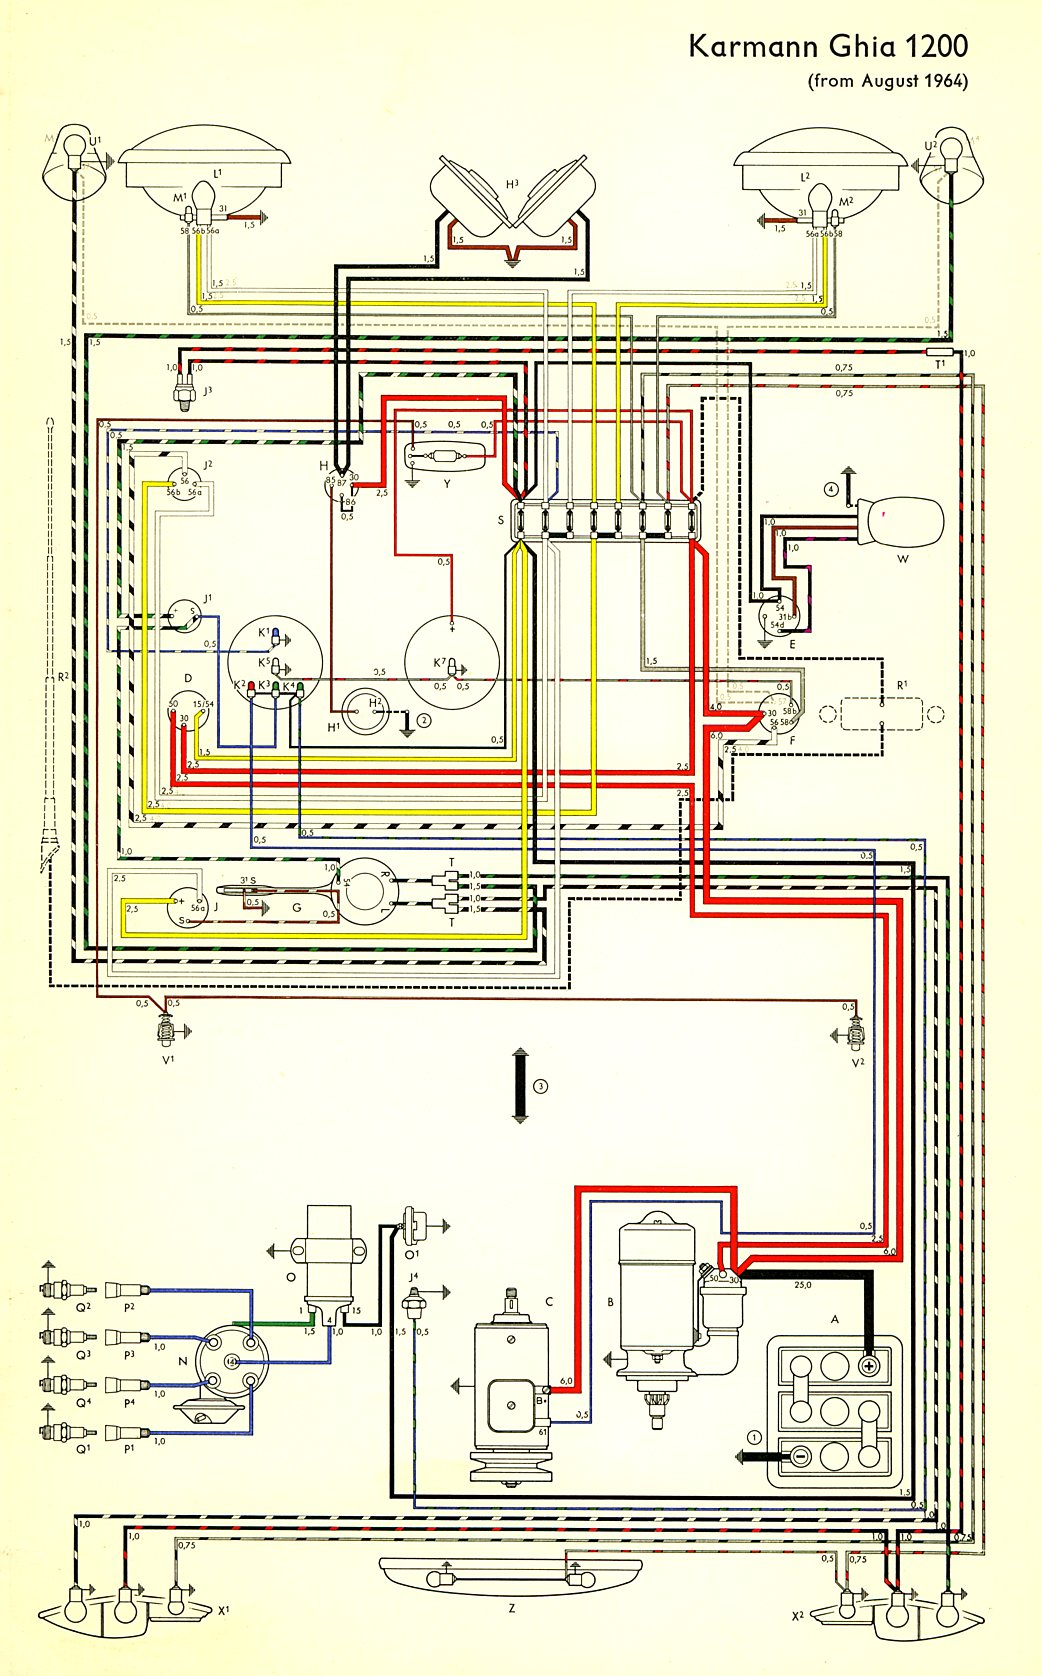 1964 wiring diagram wiring diagram for impala the wiring diagram com karmann ghia wiring diagrams 1965